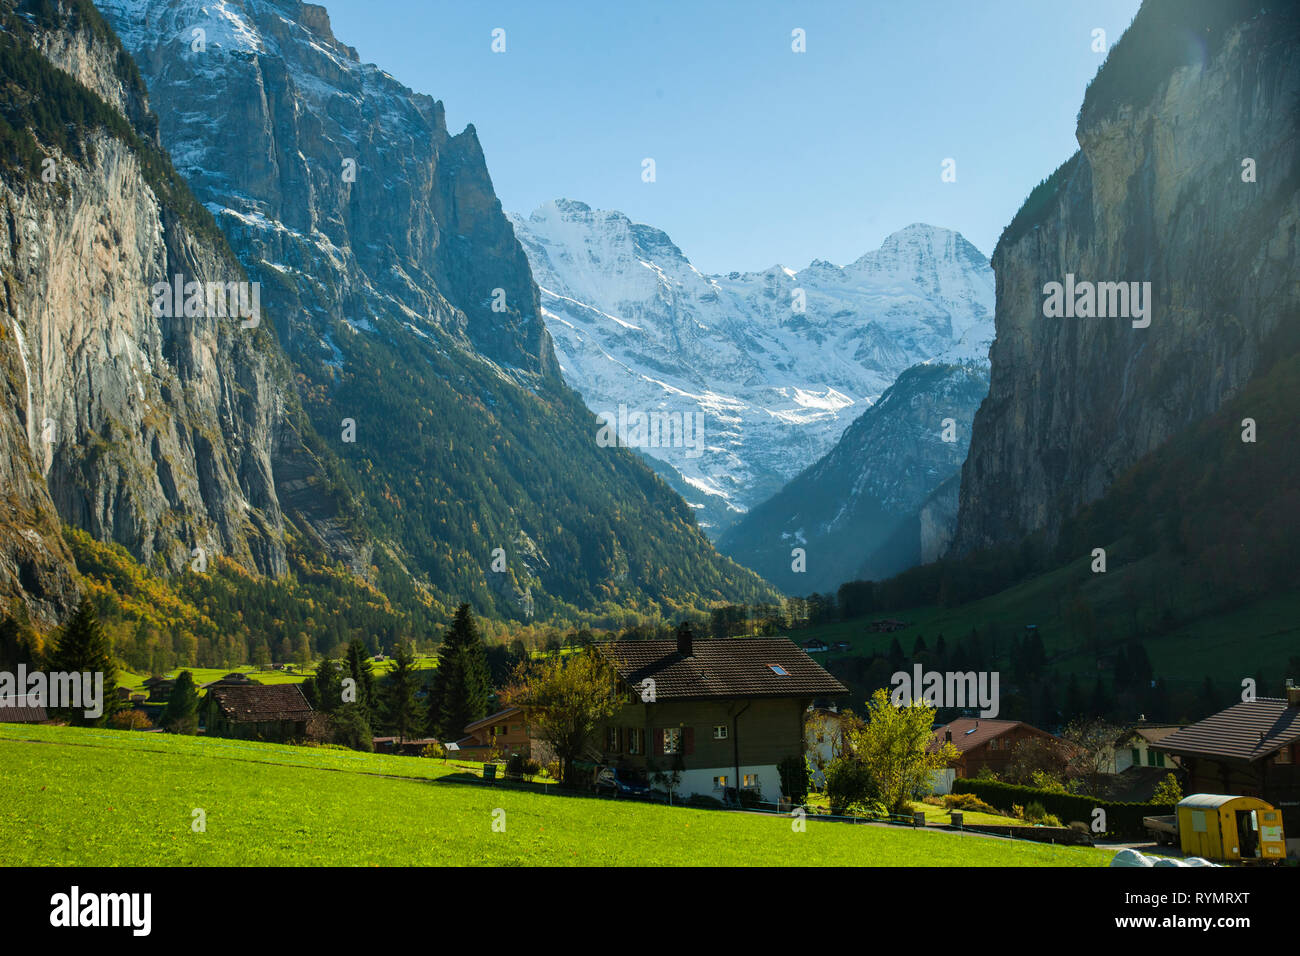 Autumn afternoon at Lauterbrunnen Valley in the Swiss Alps. - Stock Image